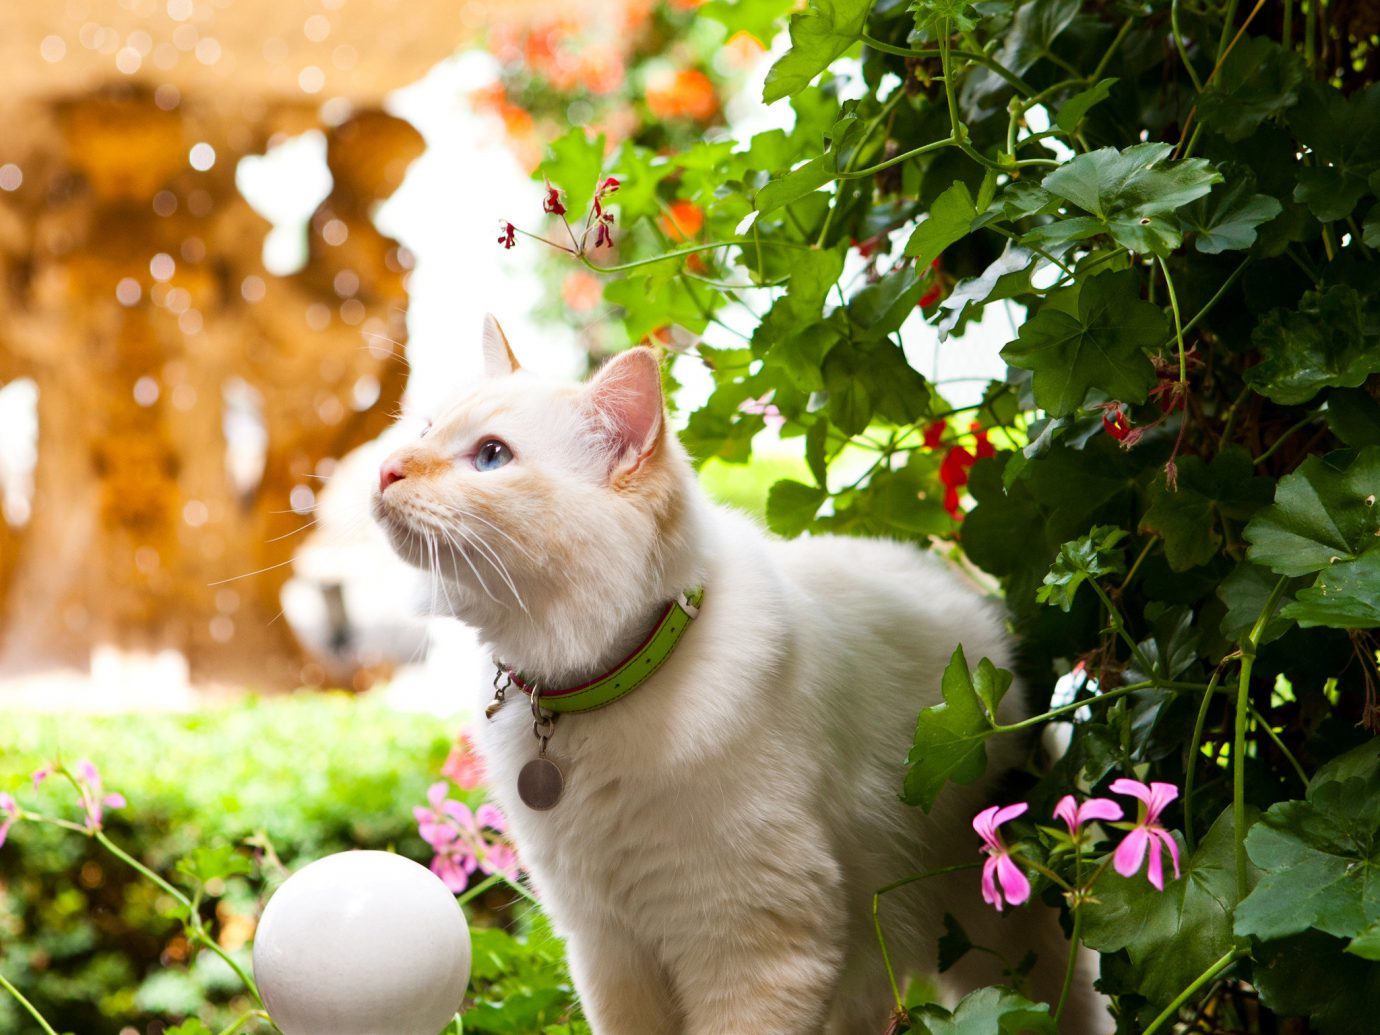 Offbeat tree flower cat mammal plant outdoor Garden white domestic cat